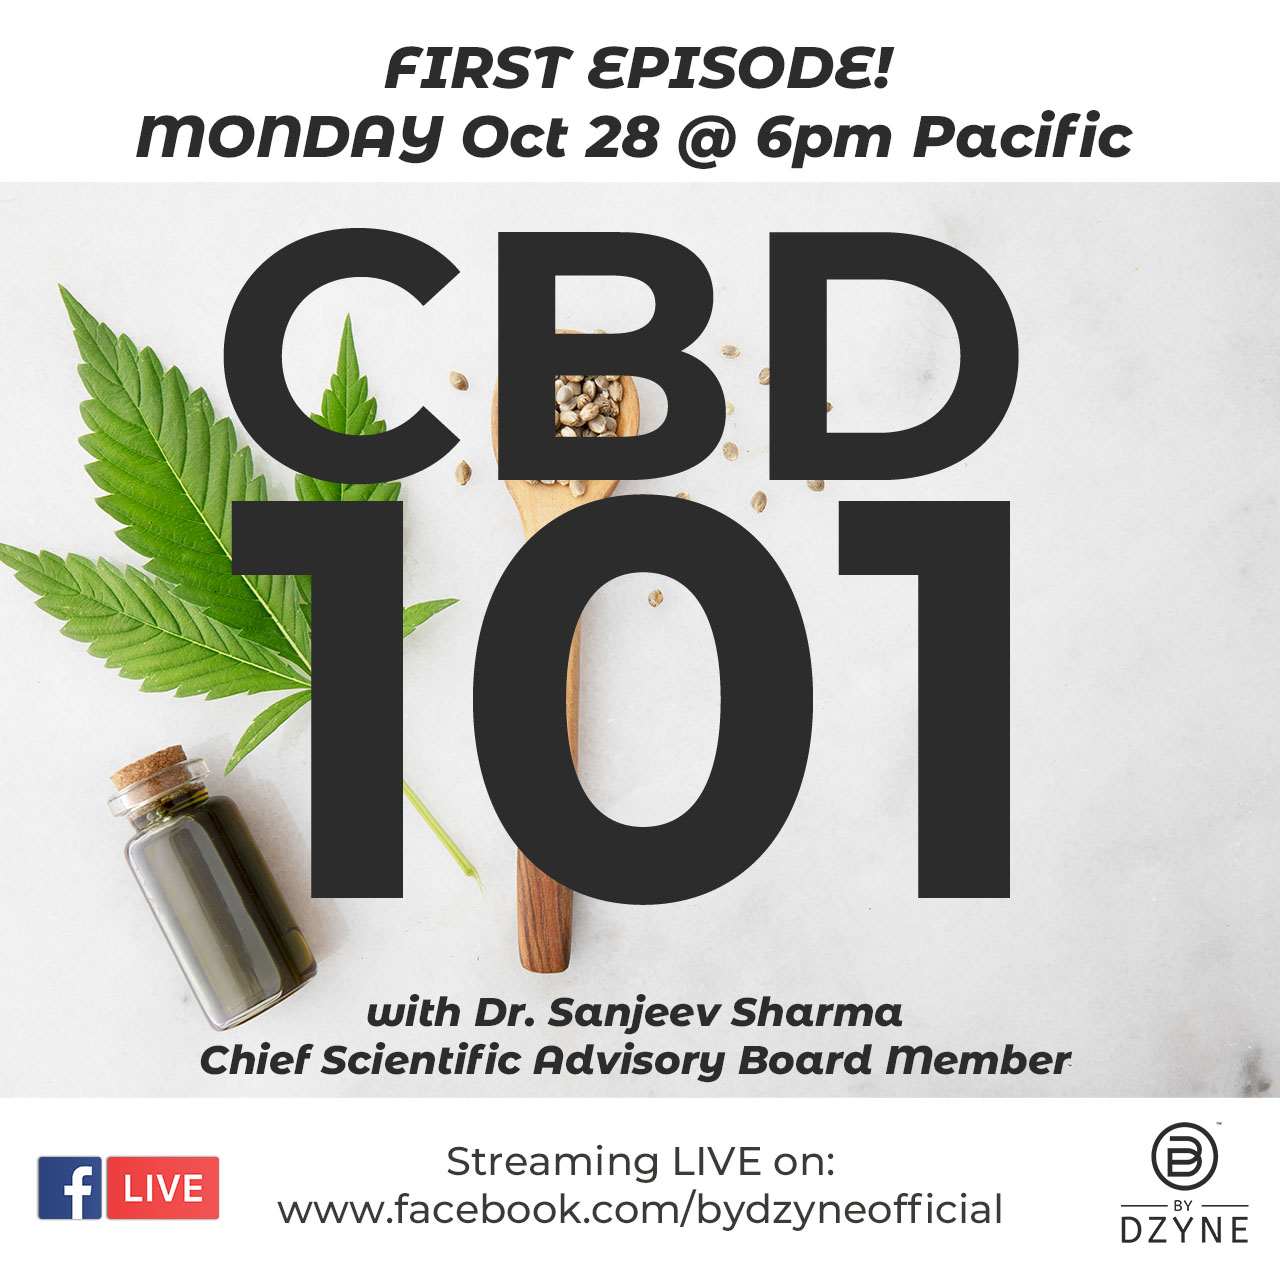 RECAP: Episode 1 – CBD 101 with Dr. Sanjeev Sharma